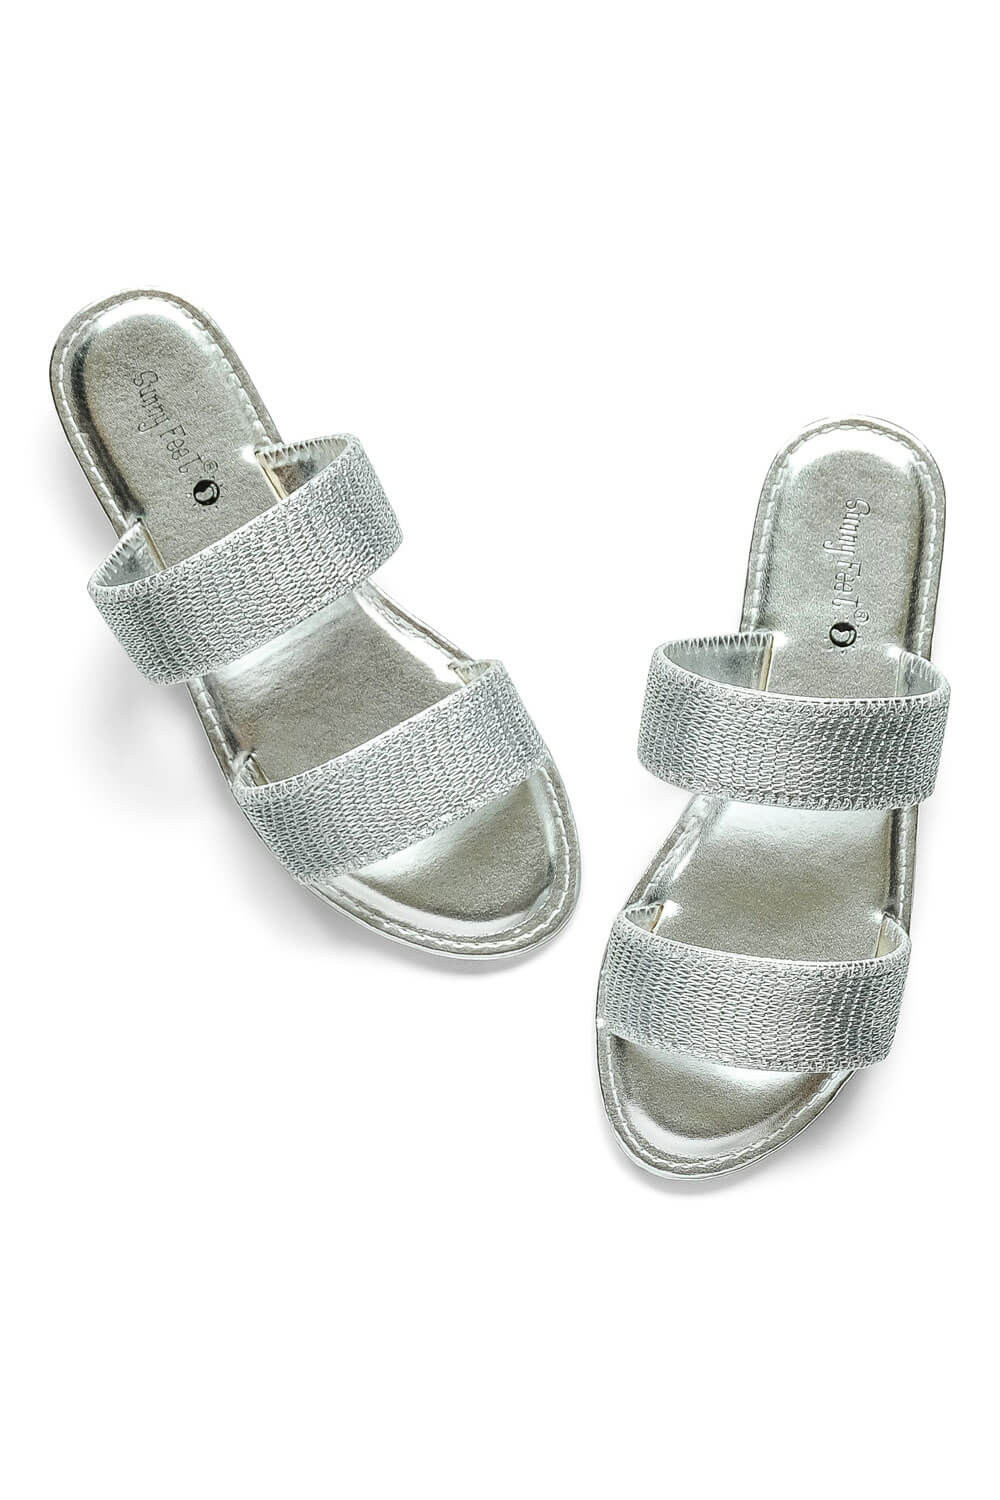 Skylar Coastline Sandal silver - MILK MONEY